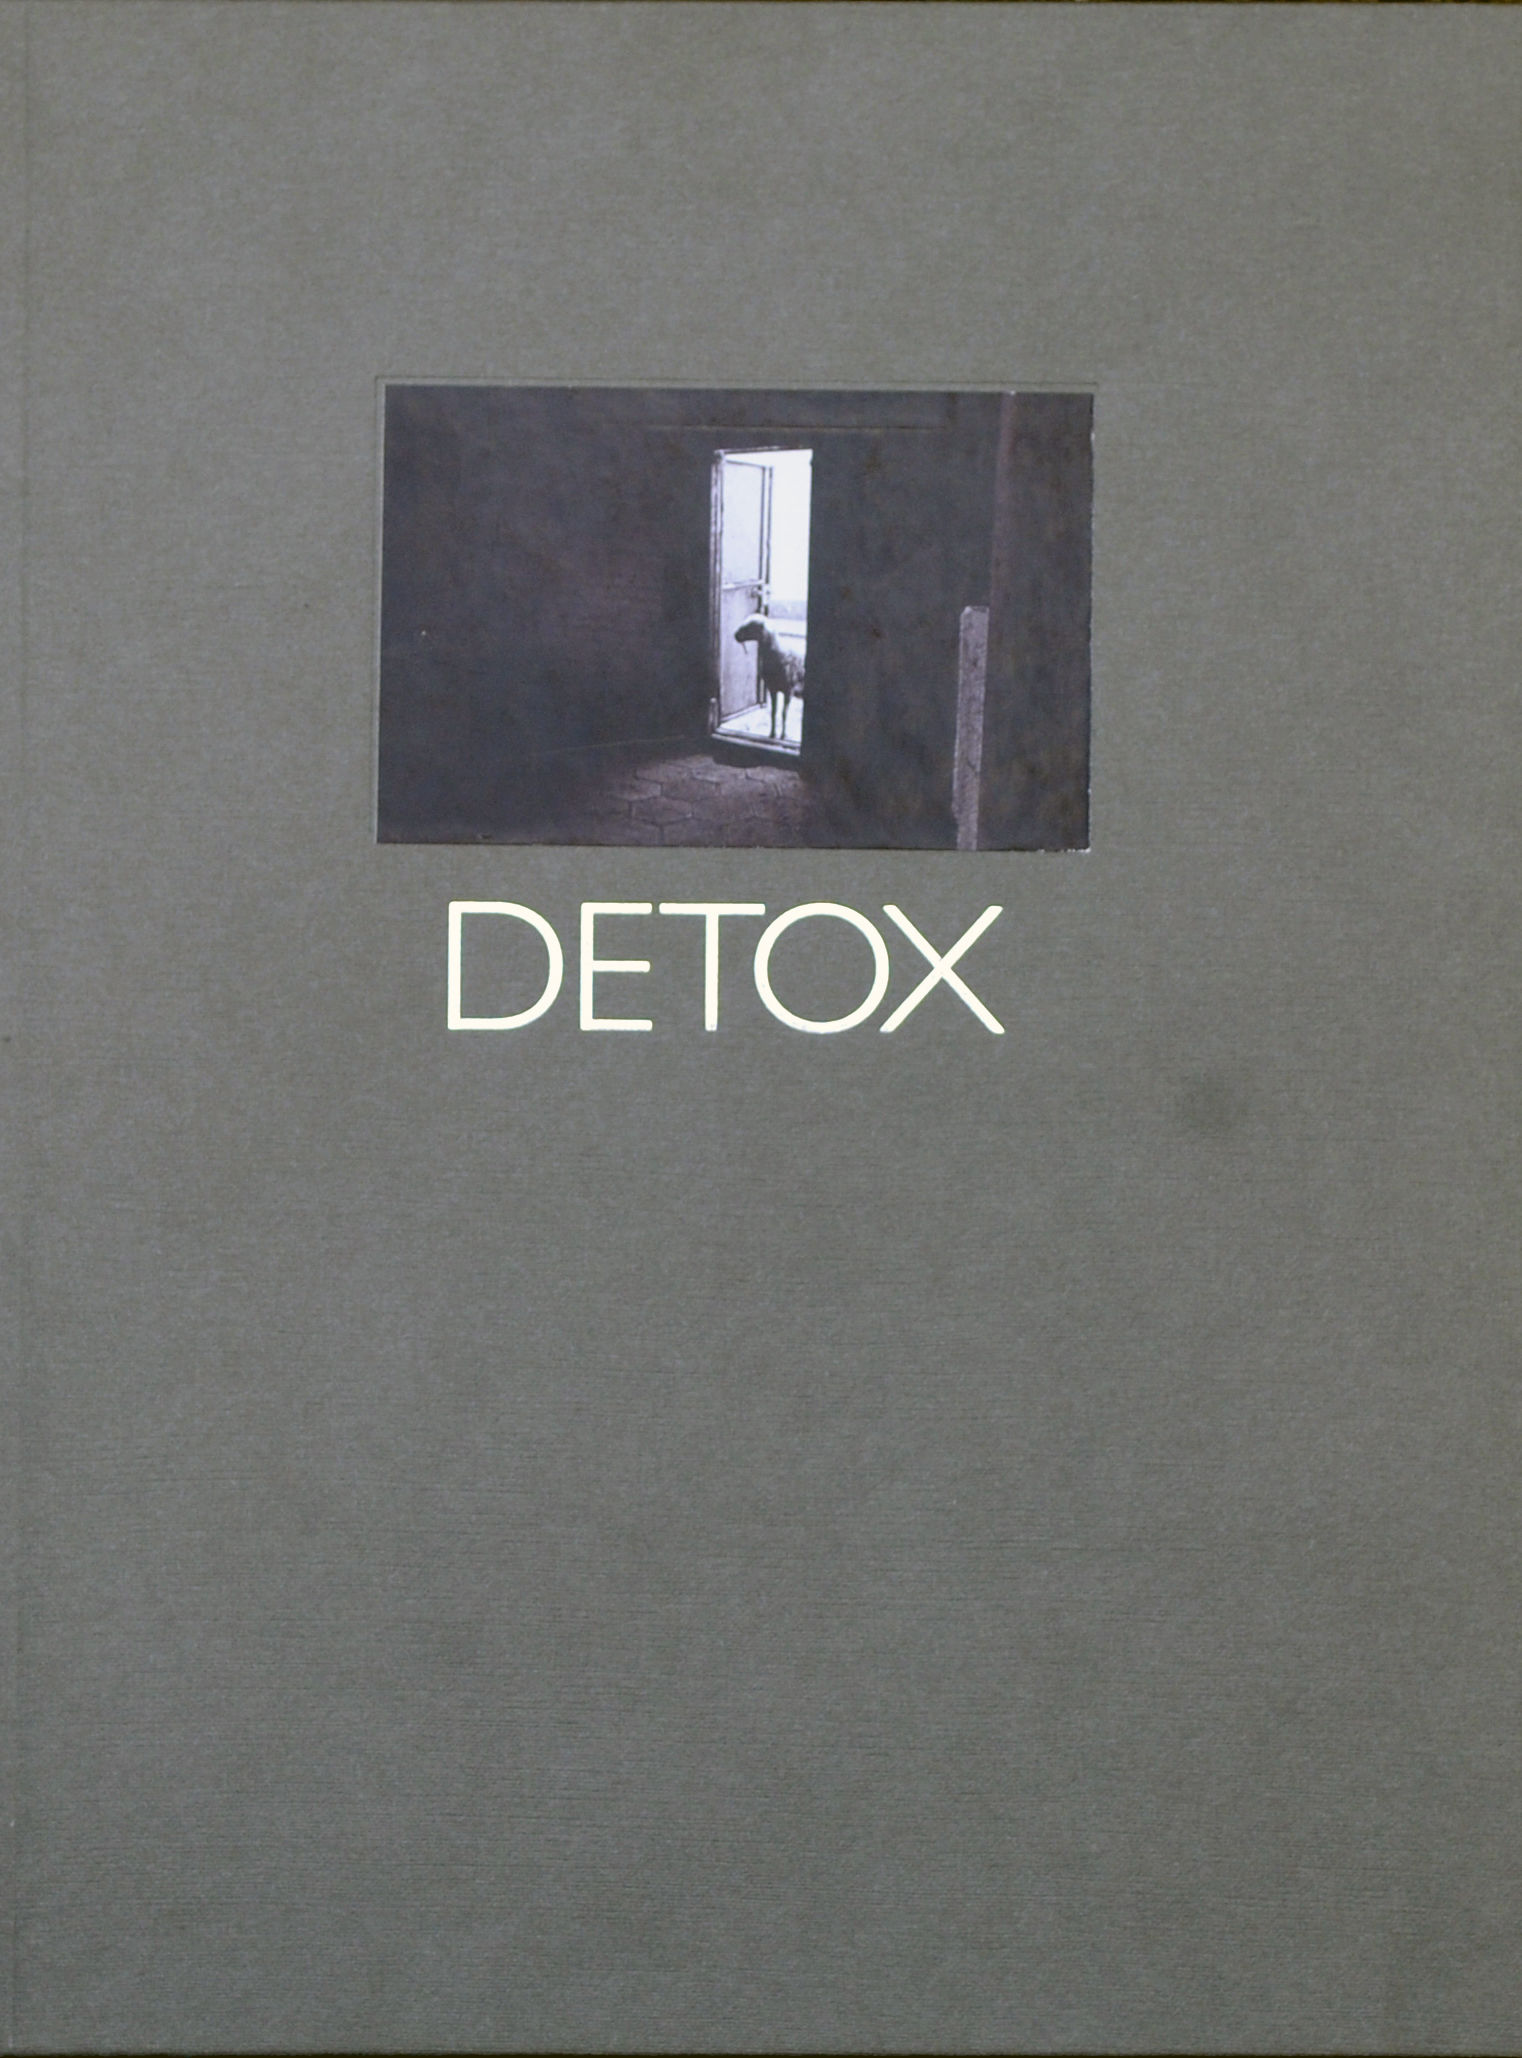 Detox. Dialogues With the Philosopher: Ressentiment and Politics